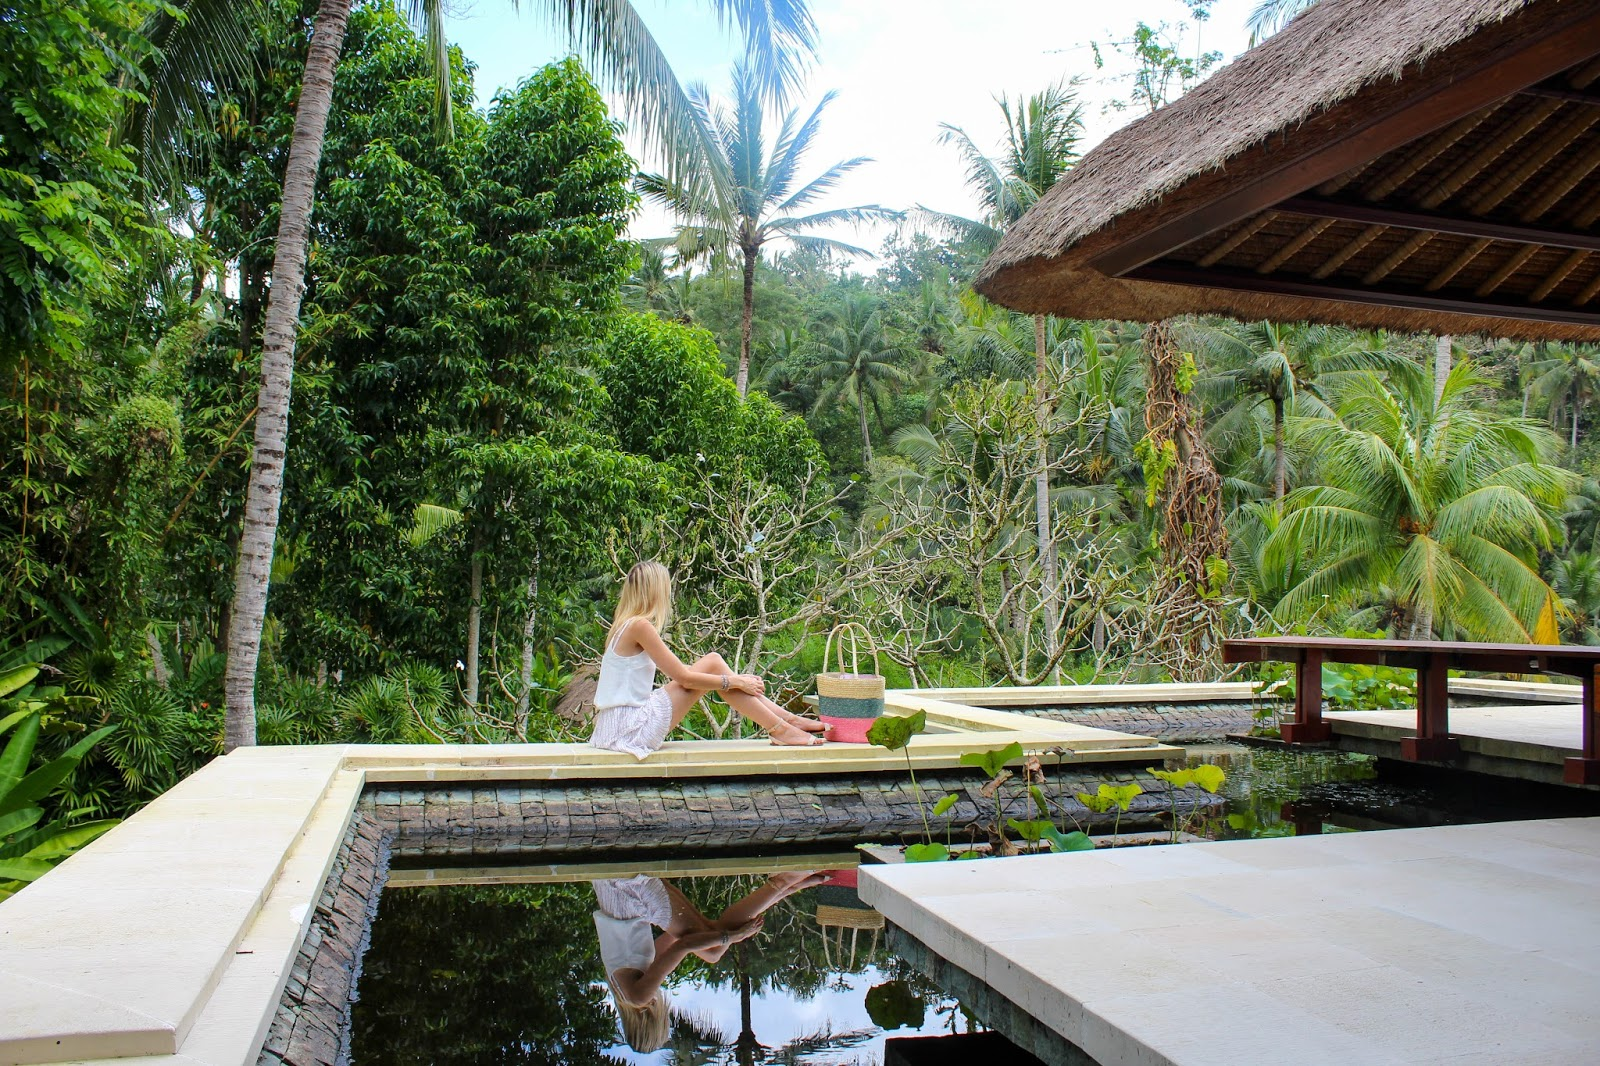 Four Seasons at Sayan: A Luxury Retreat in Bali